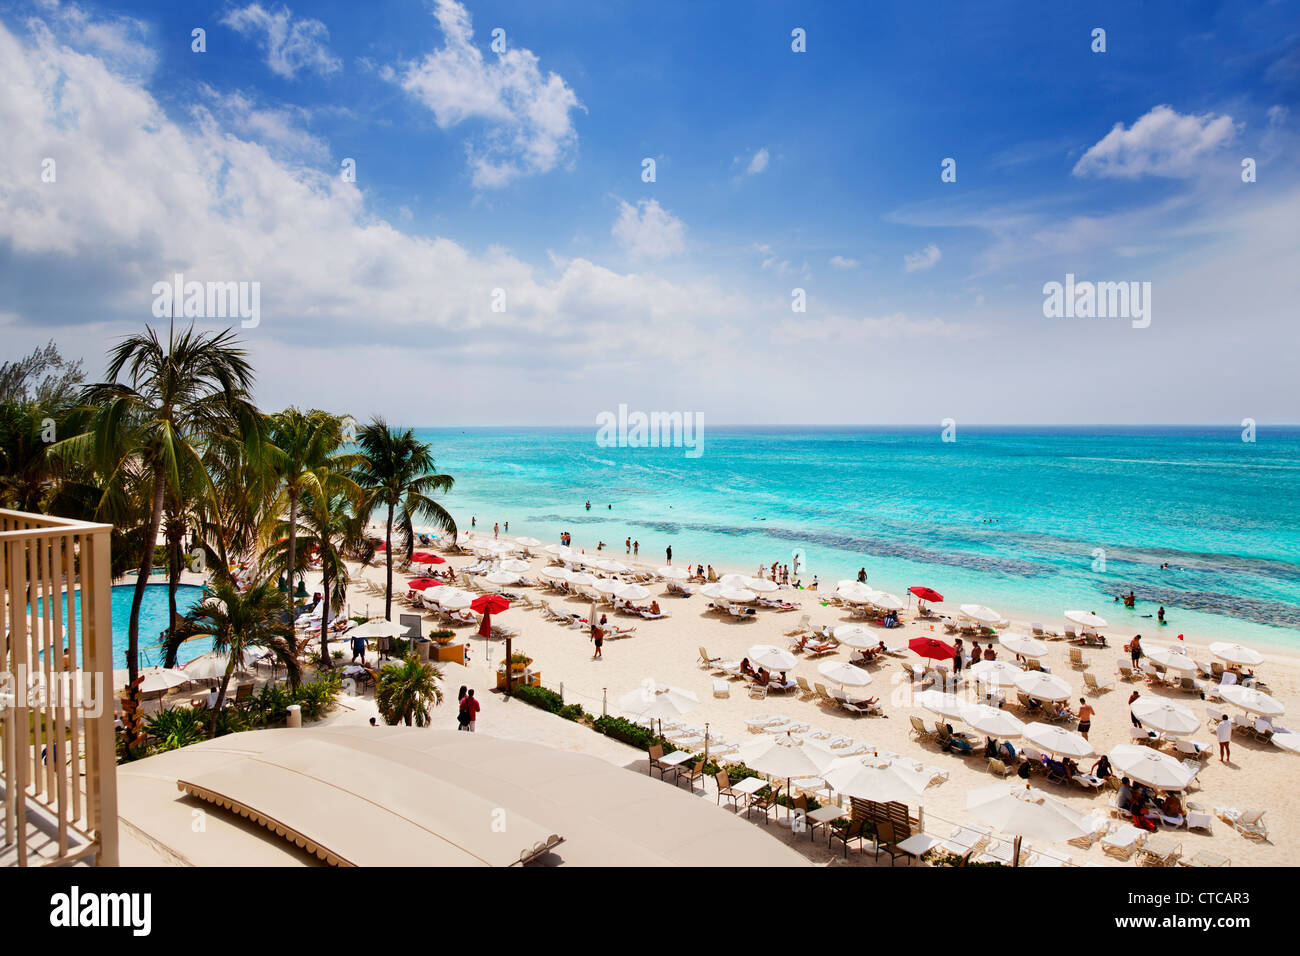 Vacationers enjoying the sun on Grand Cayman's Seven Mile Beach - Stock Image